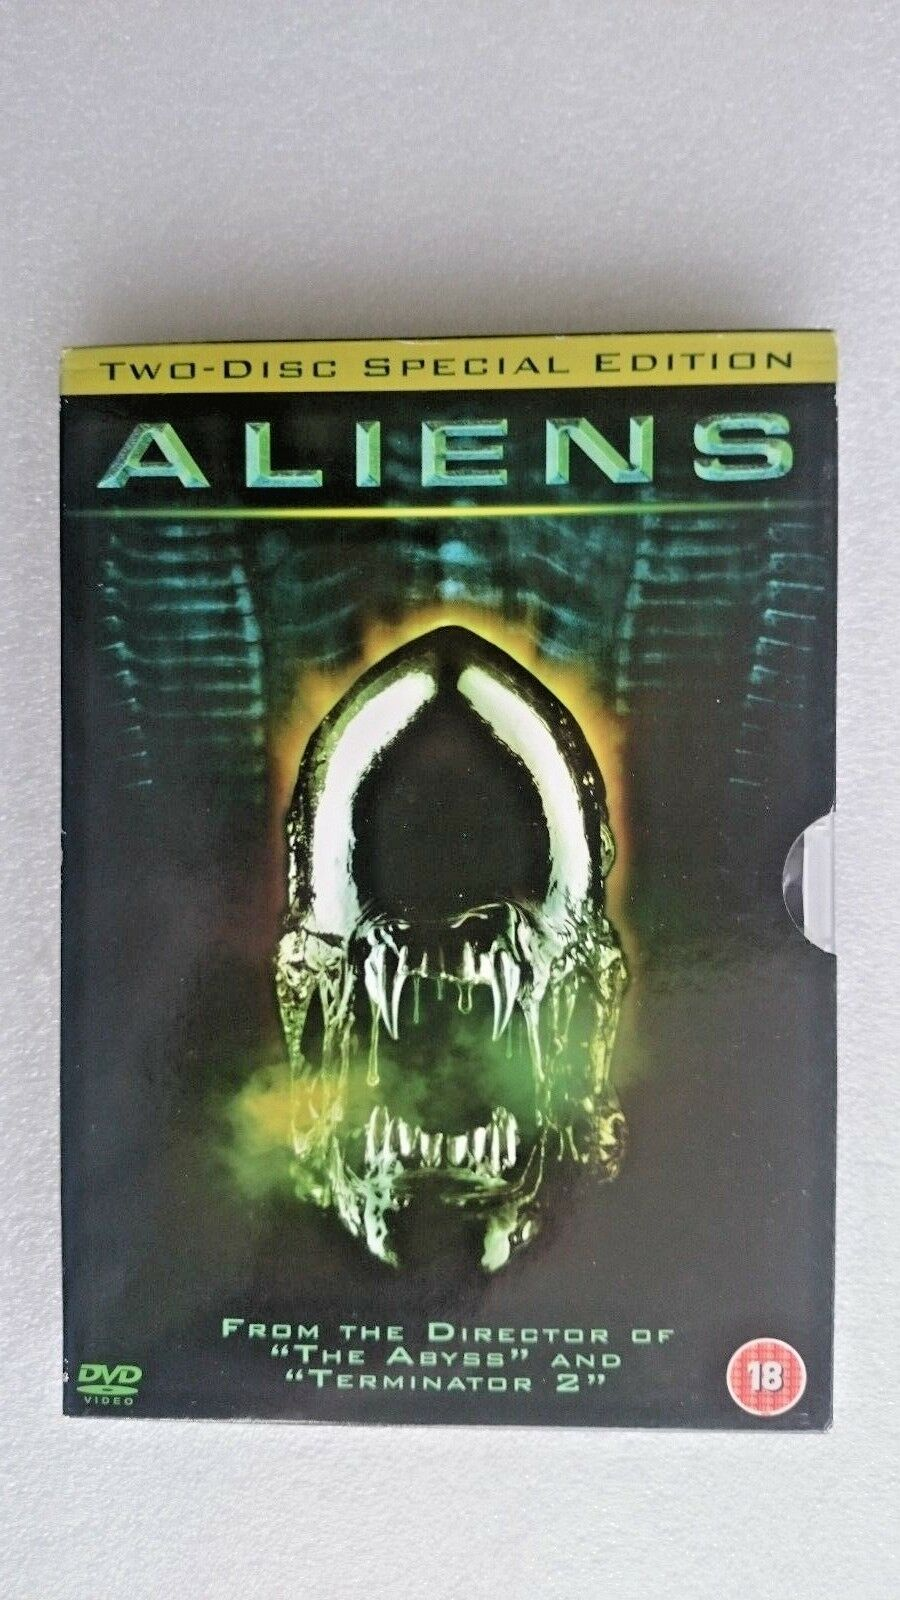 Aliens (DVD, 2004, 2-Disc Set) - Special Edition